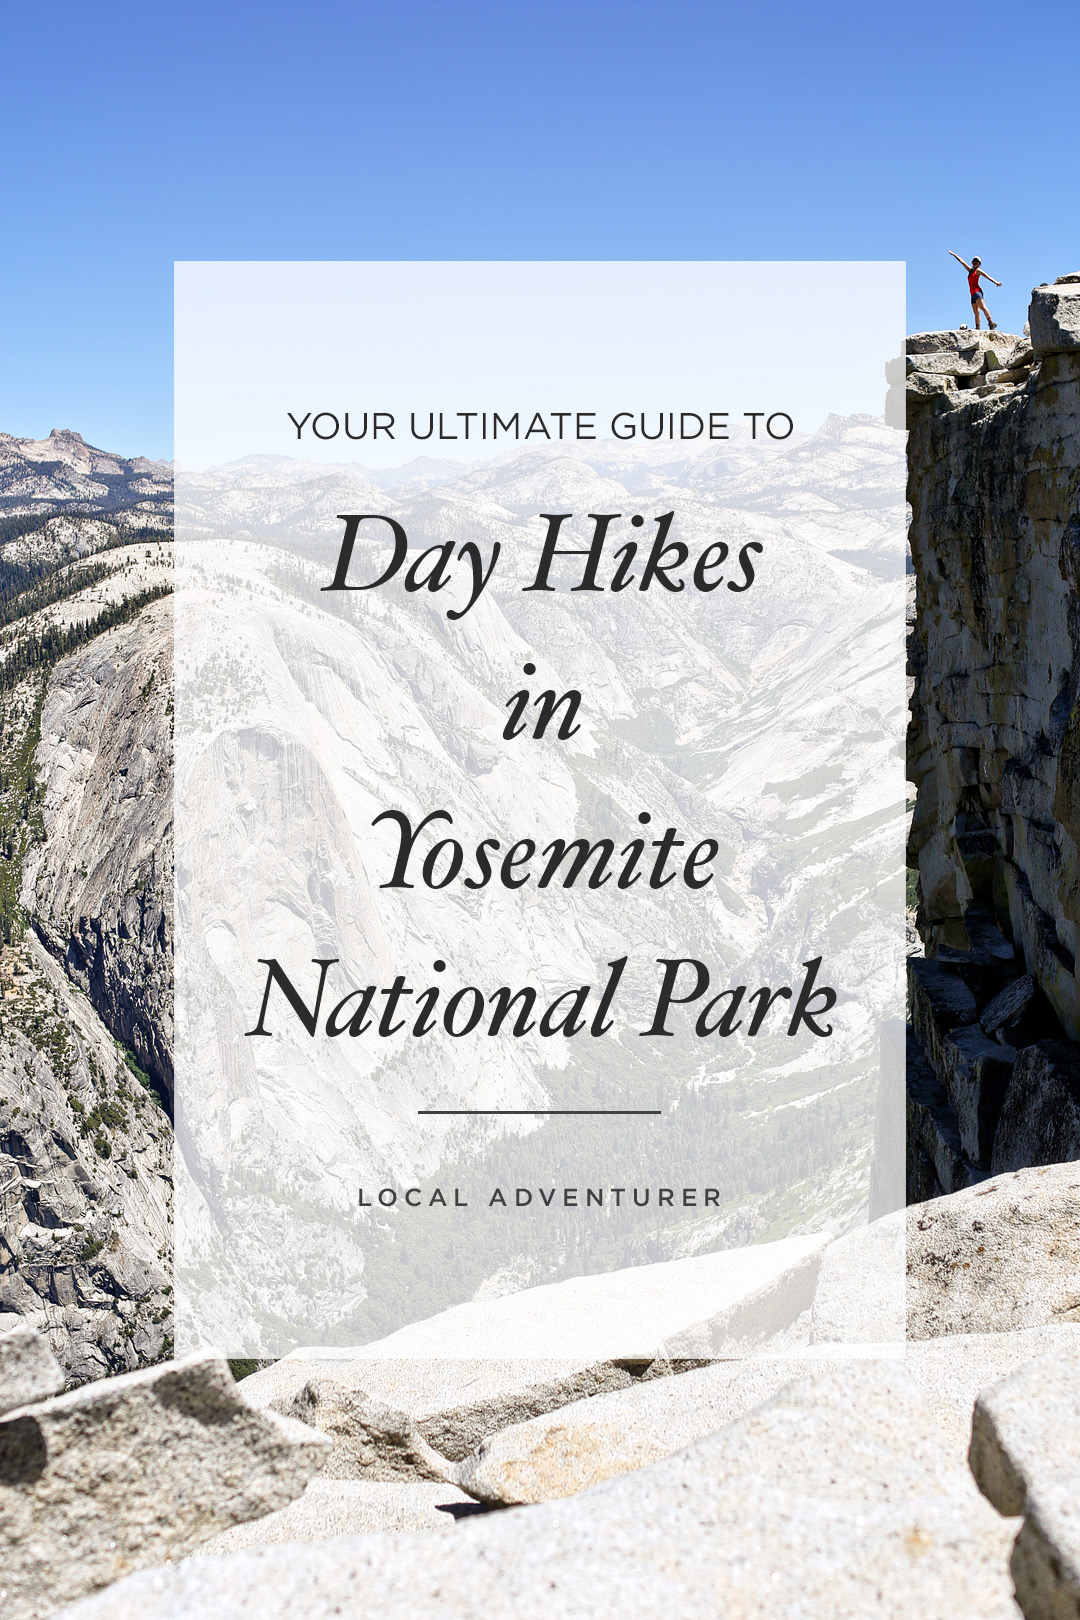 Visiting Yosemite National Park? Save this pin and check out these 11 best day hikes in Yosemite National Park. These Yosemite hiking trails are also some of the best hiking trails in California and the US that you'll want to add to your hiking bucket lists. They take you to some of the most beautiful places and best views in Yosemite. They include North Dome, Cathedral Lakes, Half Dome, and more. // Local Adventurer #localadventurer #yosemite #california #nationalpark #visitcalifornia #visitca #findyourpark